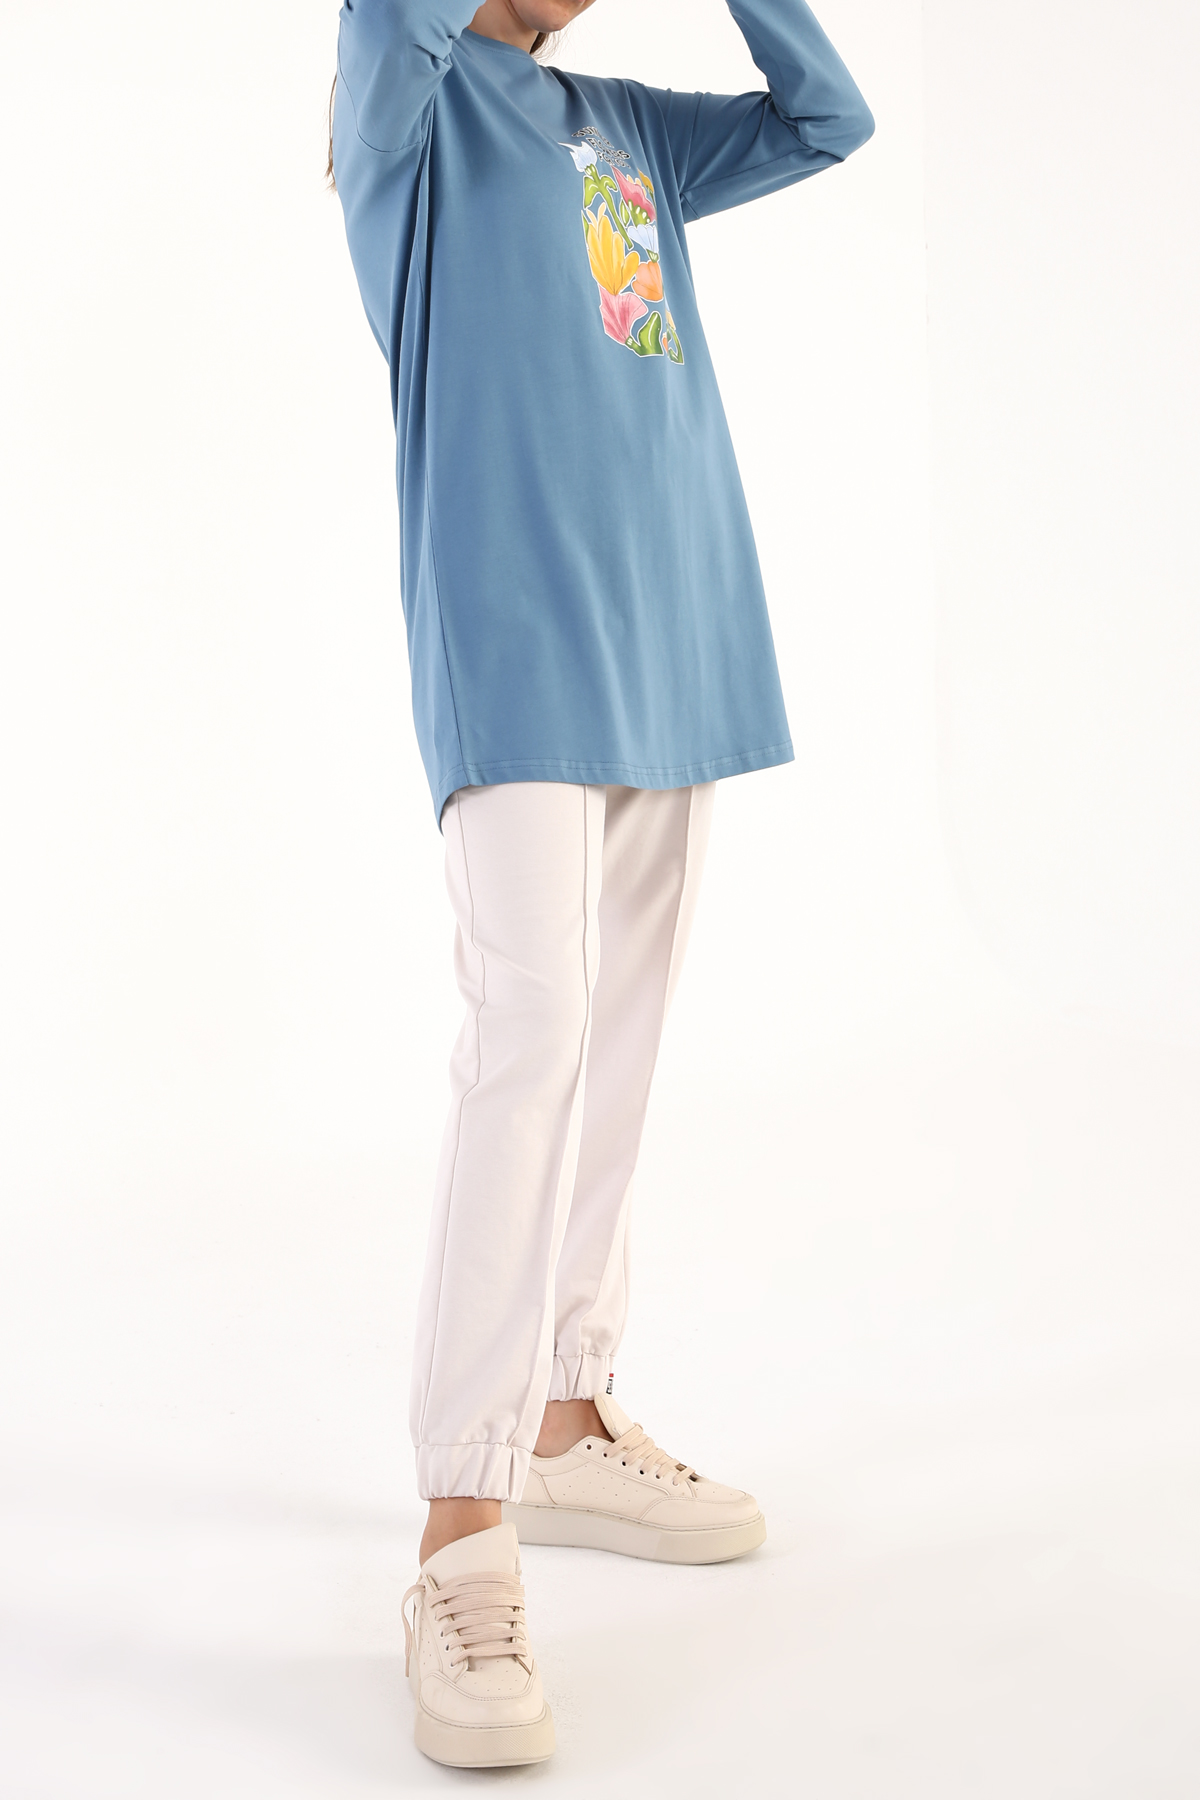 Comfy Summer Flowers Printed Long Sleeve T-Shirt Tunic